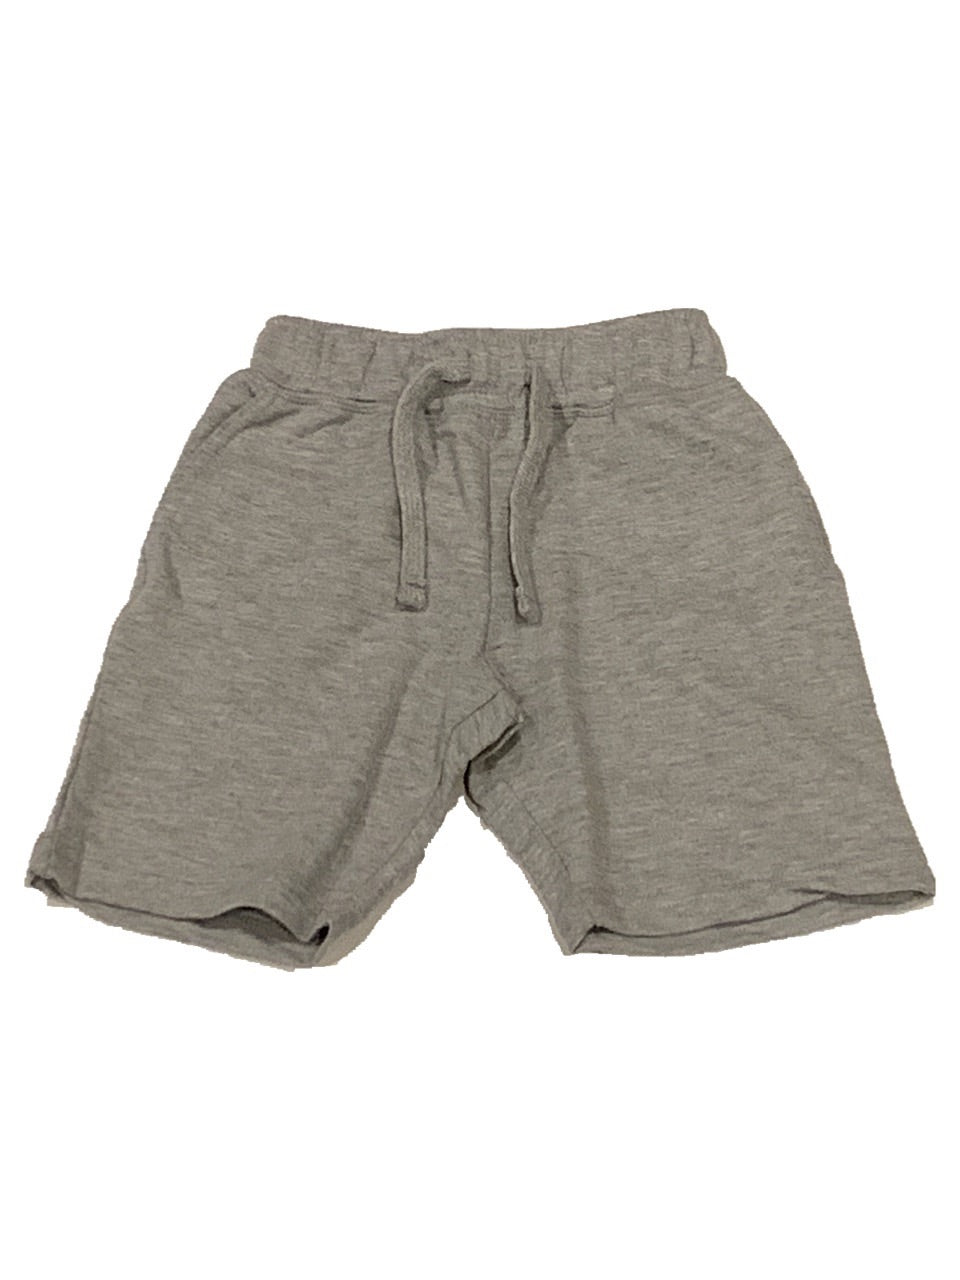 Mish Mish Heather Gray Comfy Shorts